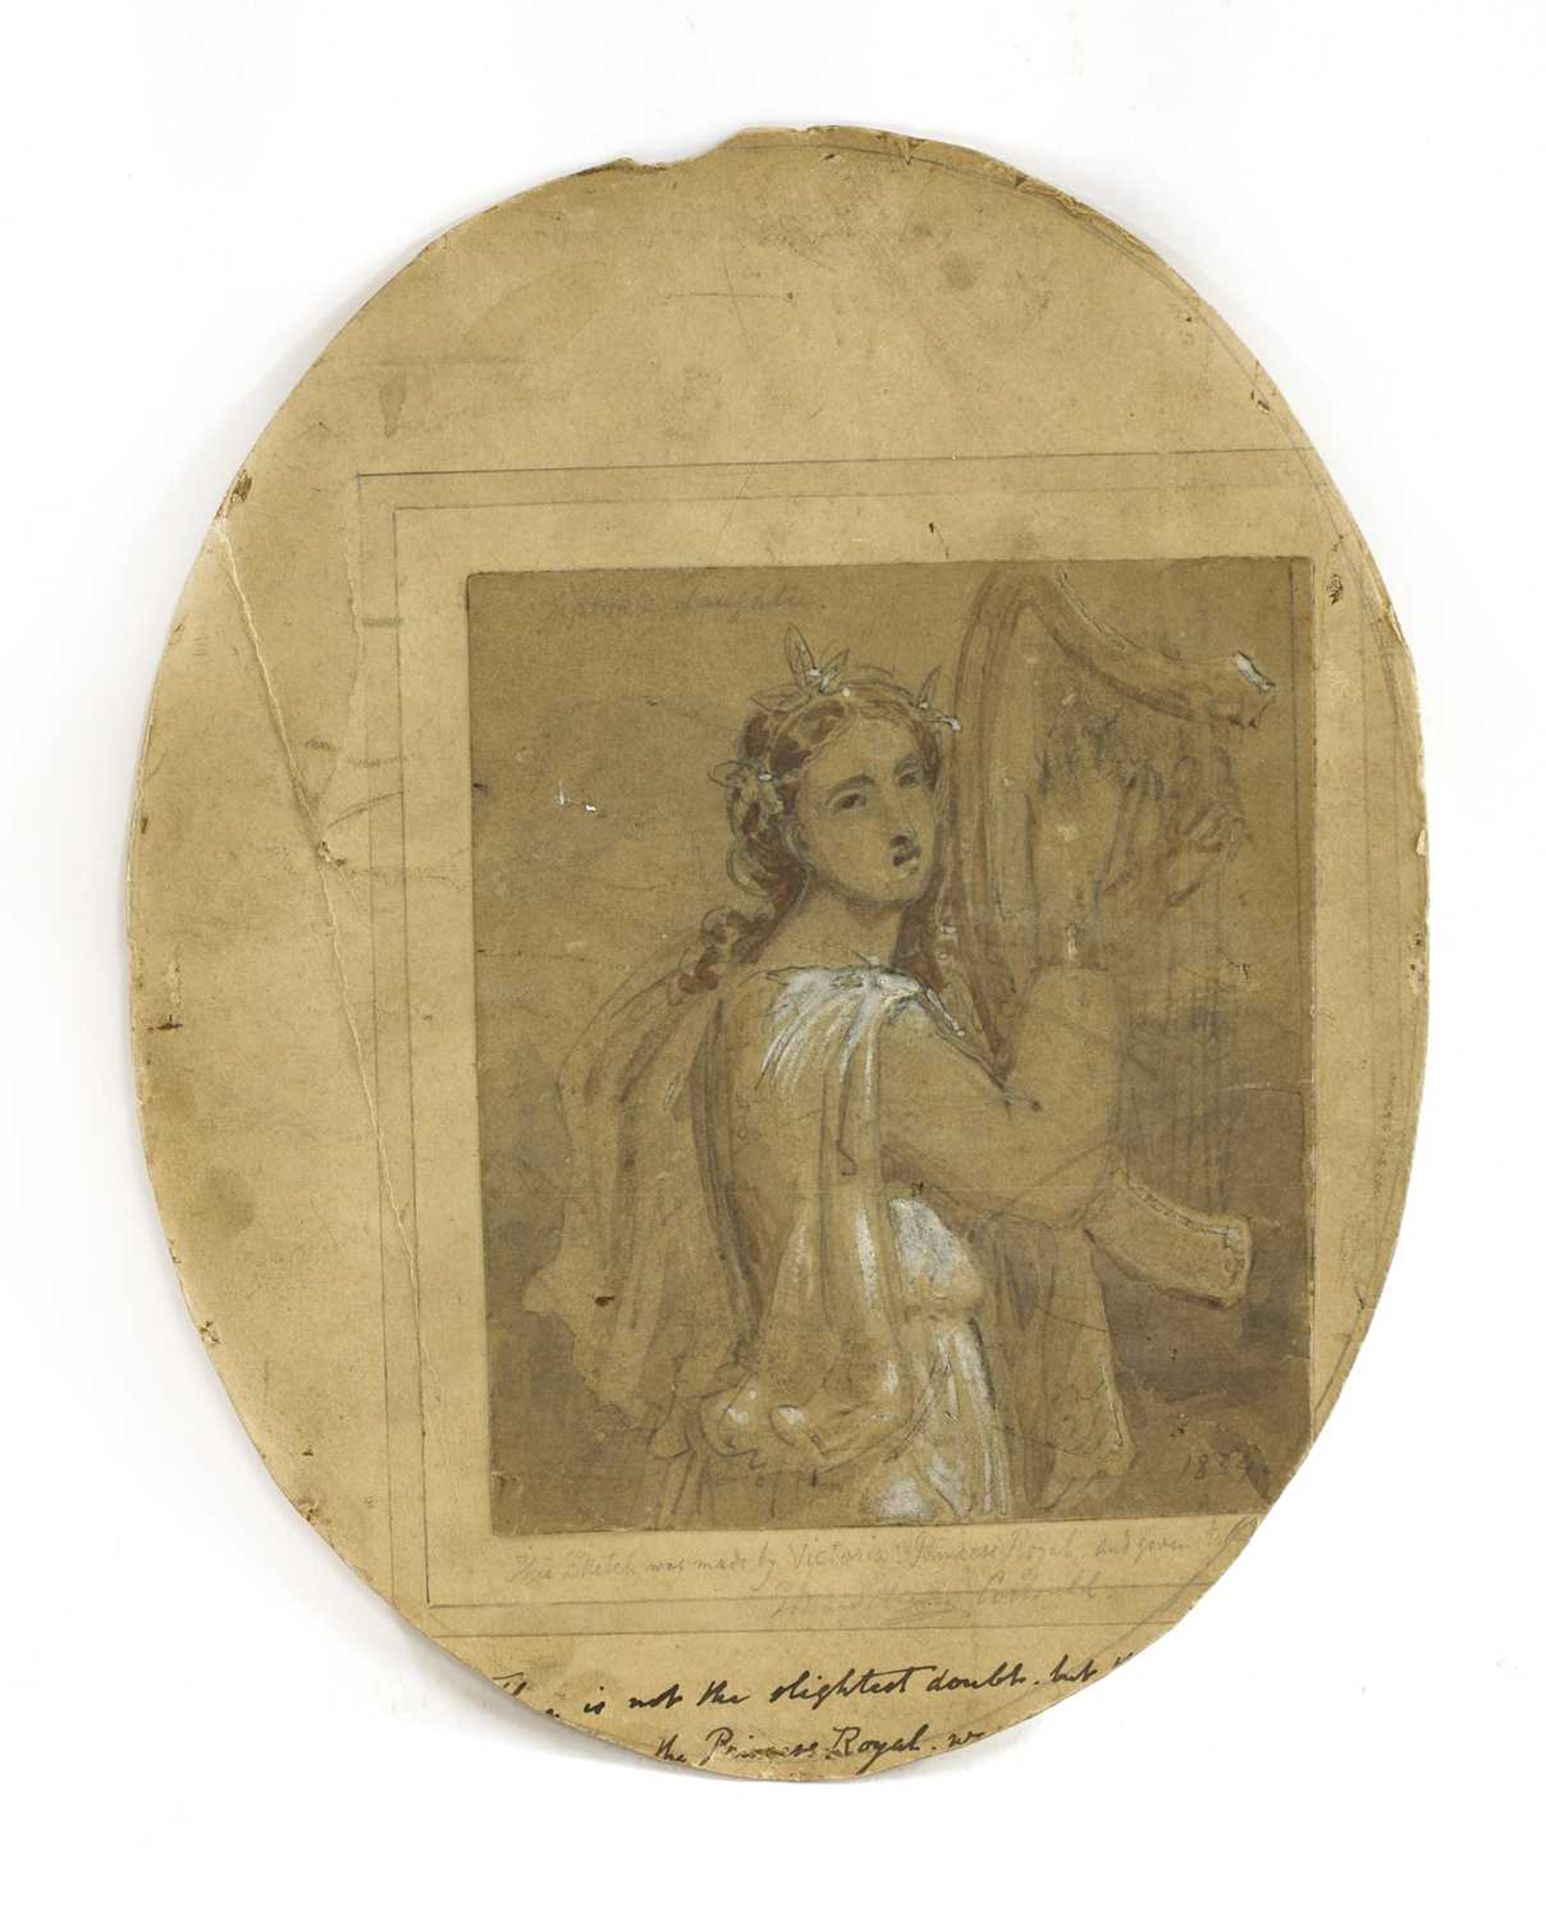 Attributed to HRH Victoria, The Princess Royal (1840-1901)